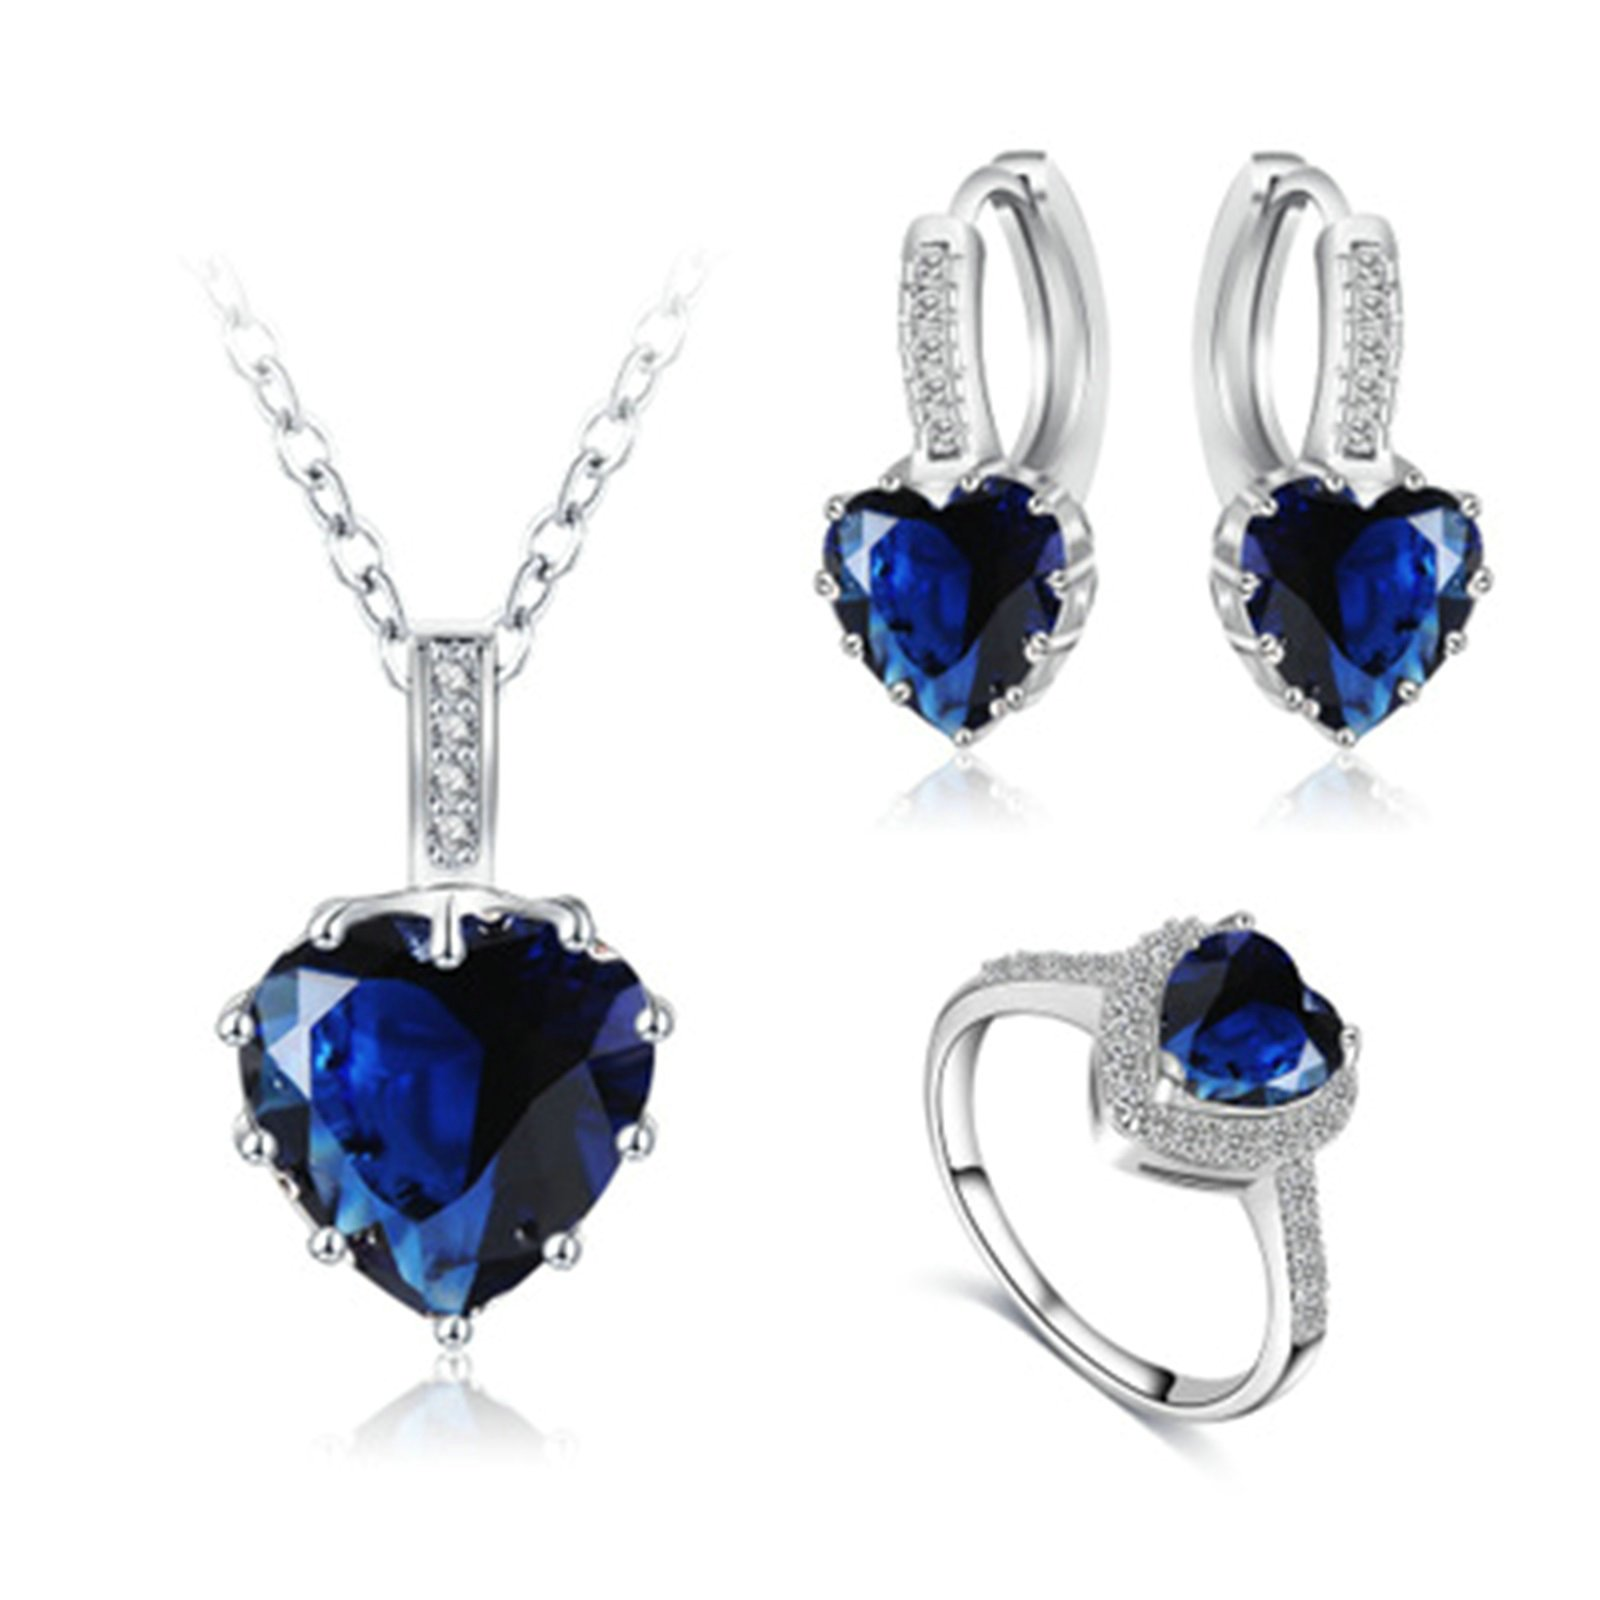 Daesar Jewelry Set Silver Plated Ring Necklace Earrings Set for Women Zircon Heart Blue Ring Size 9